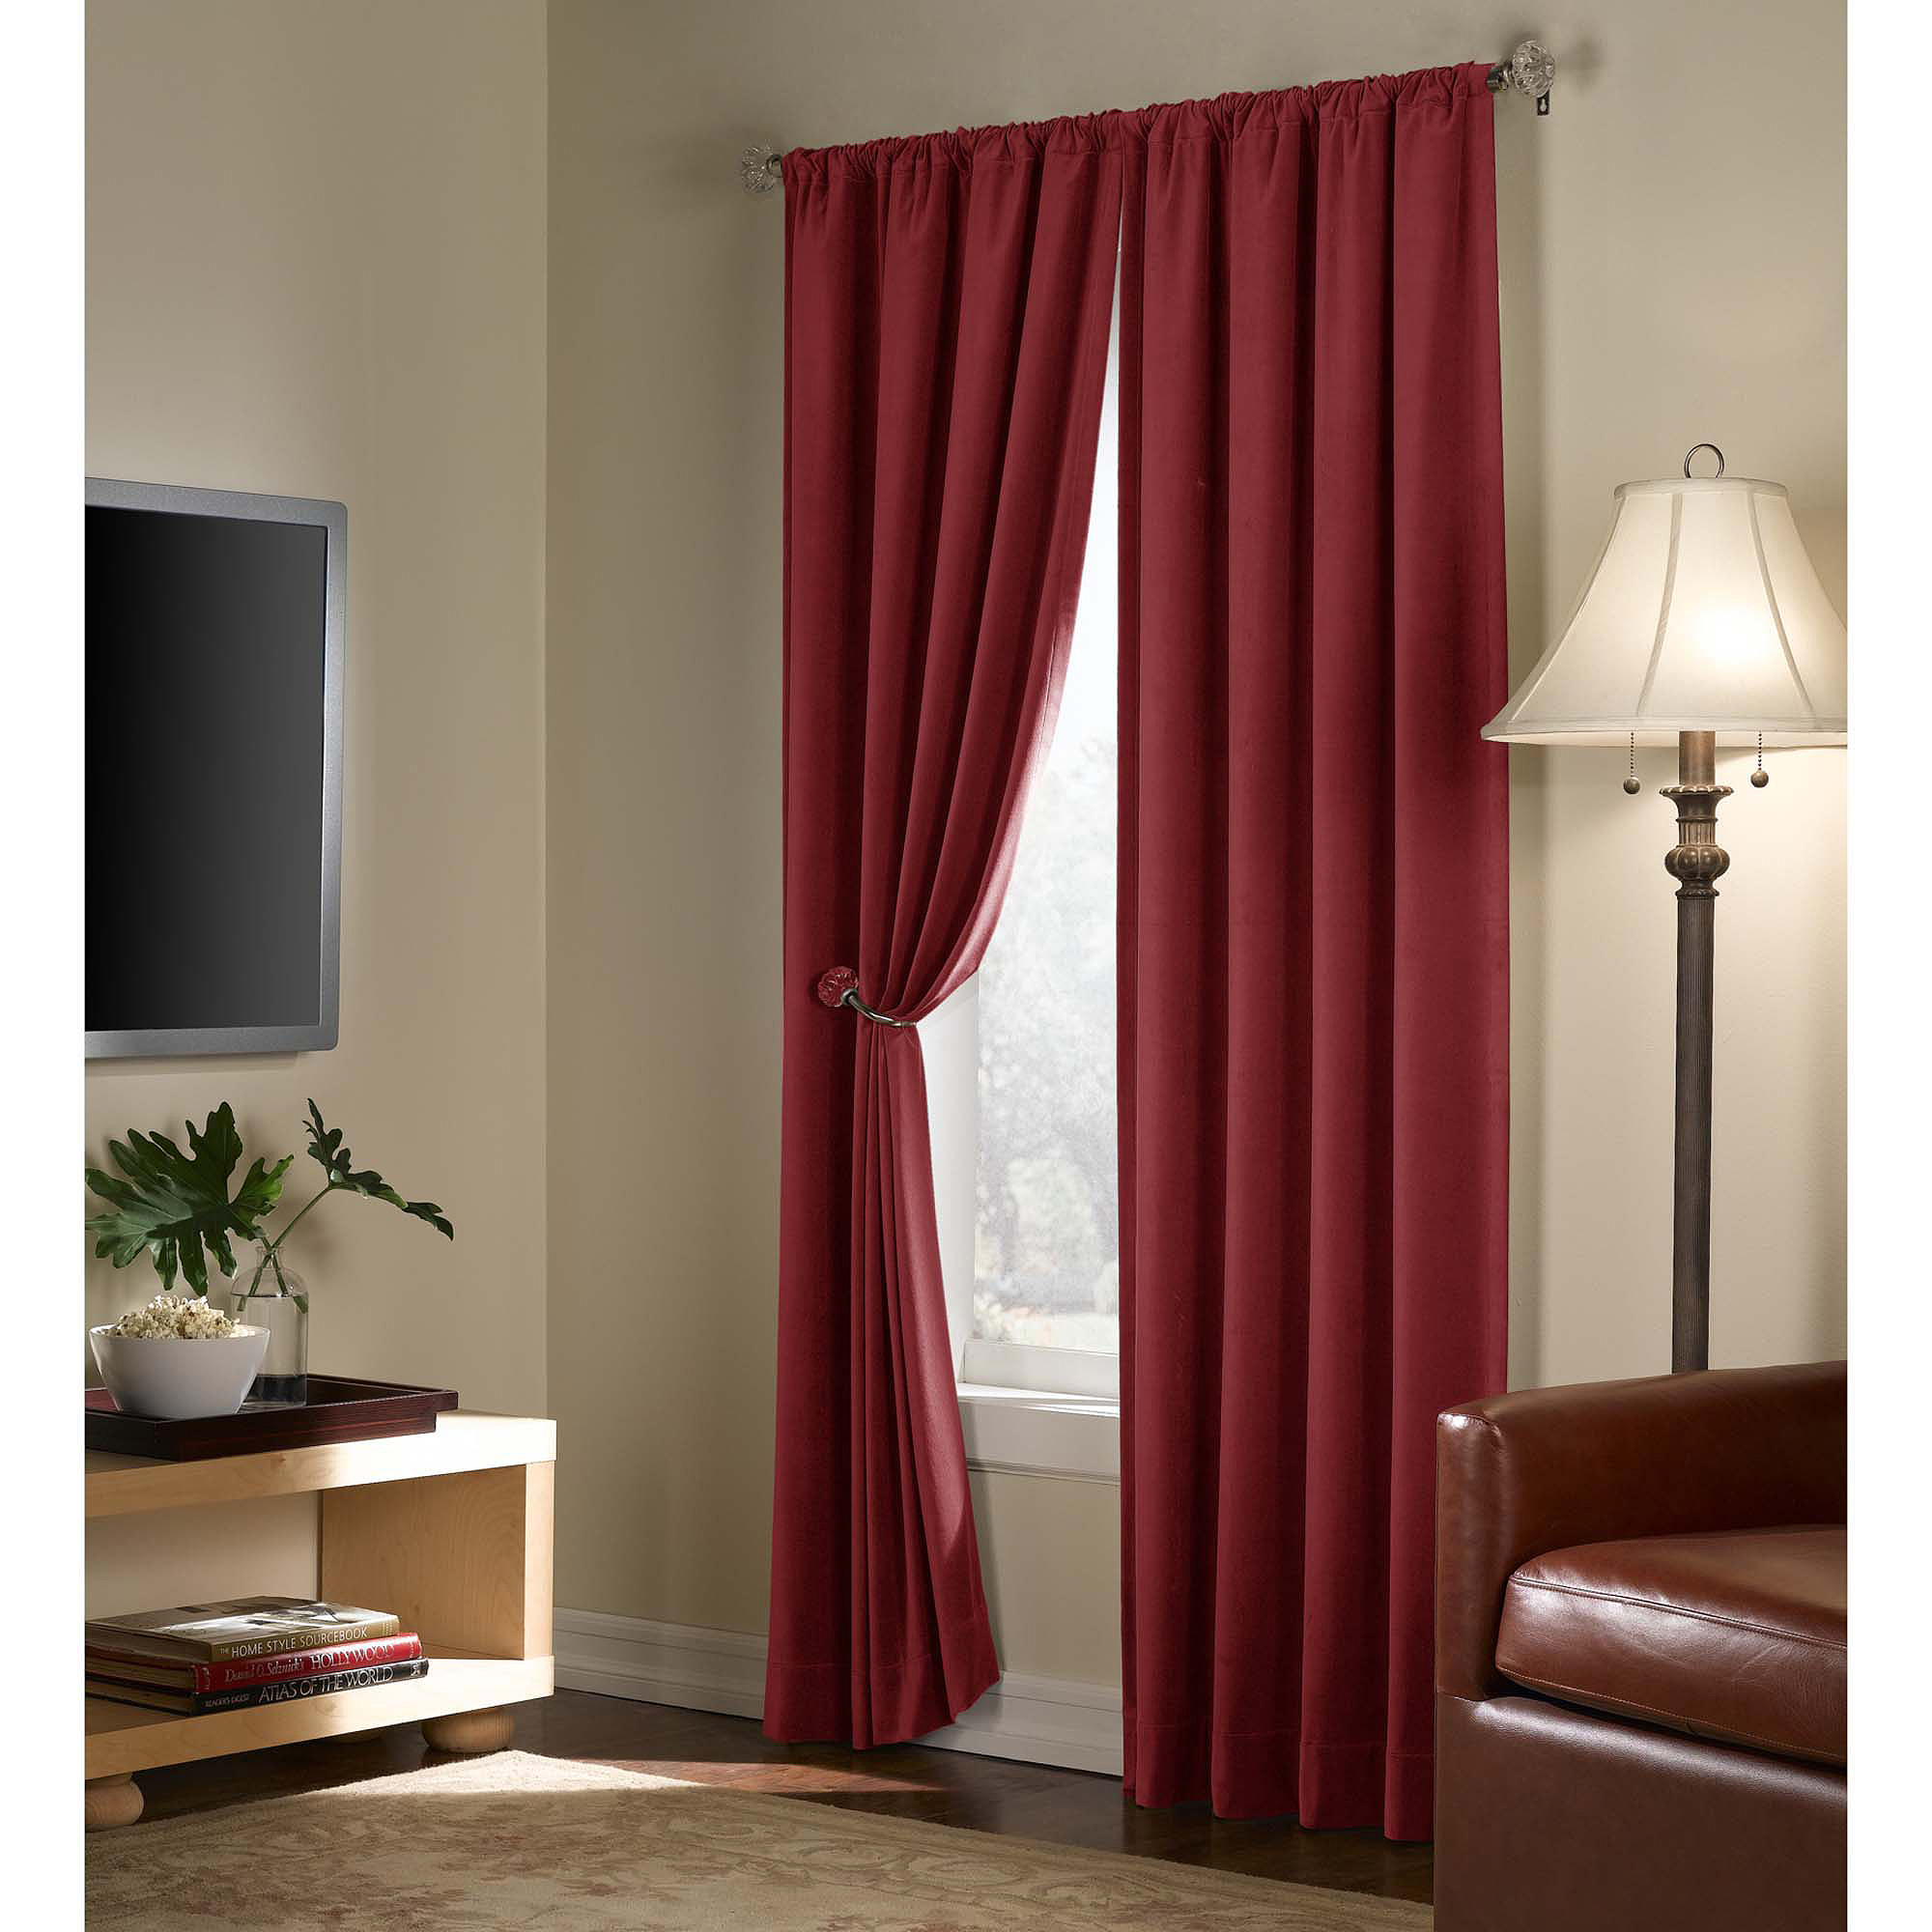 Blackout Curtains Thermal | Burgundy Blackout Curtains | Cheap Blackout Curtains